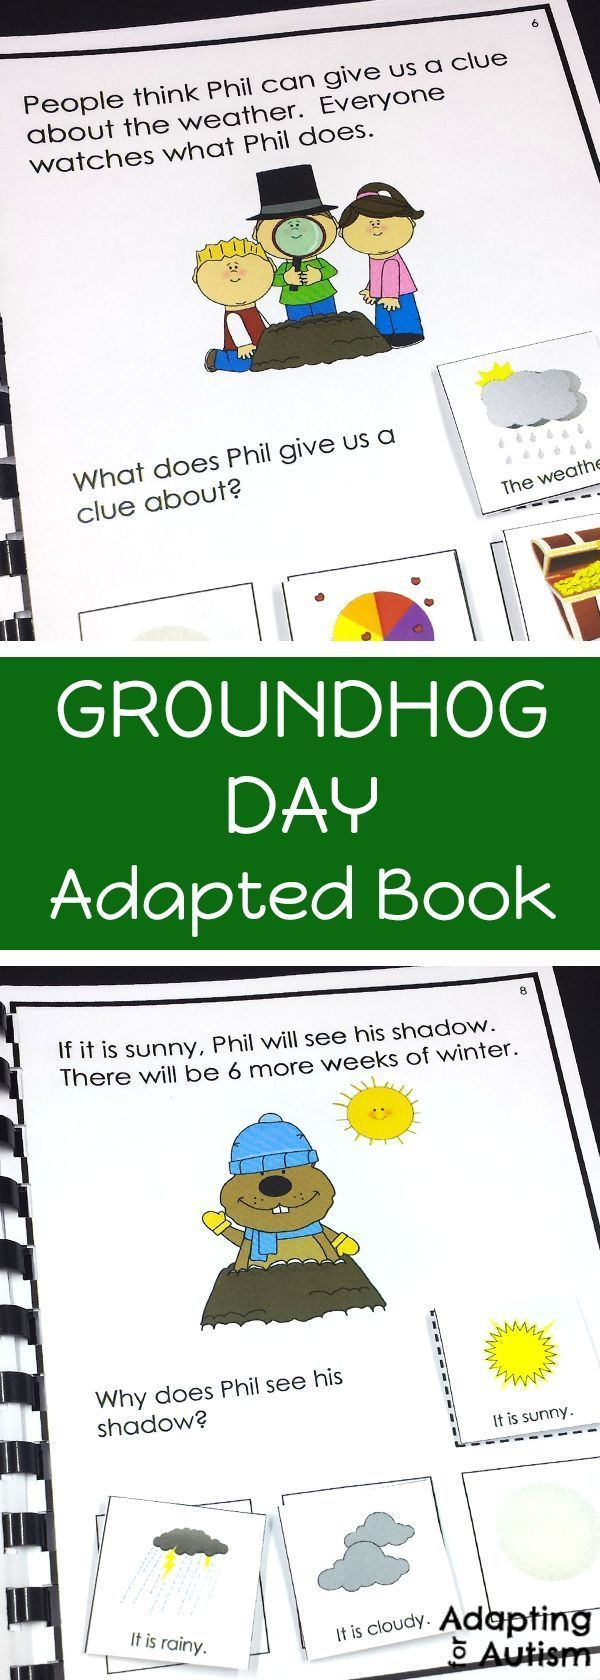 Groundhog Day Adapted Book Perfect For Special Education And Speech Therapy To Work On Reading Comprehe Adapted Books Special Education Reading Groundhog Day [ 1680 x 600 Pixel ]